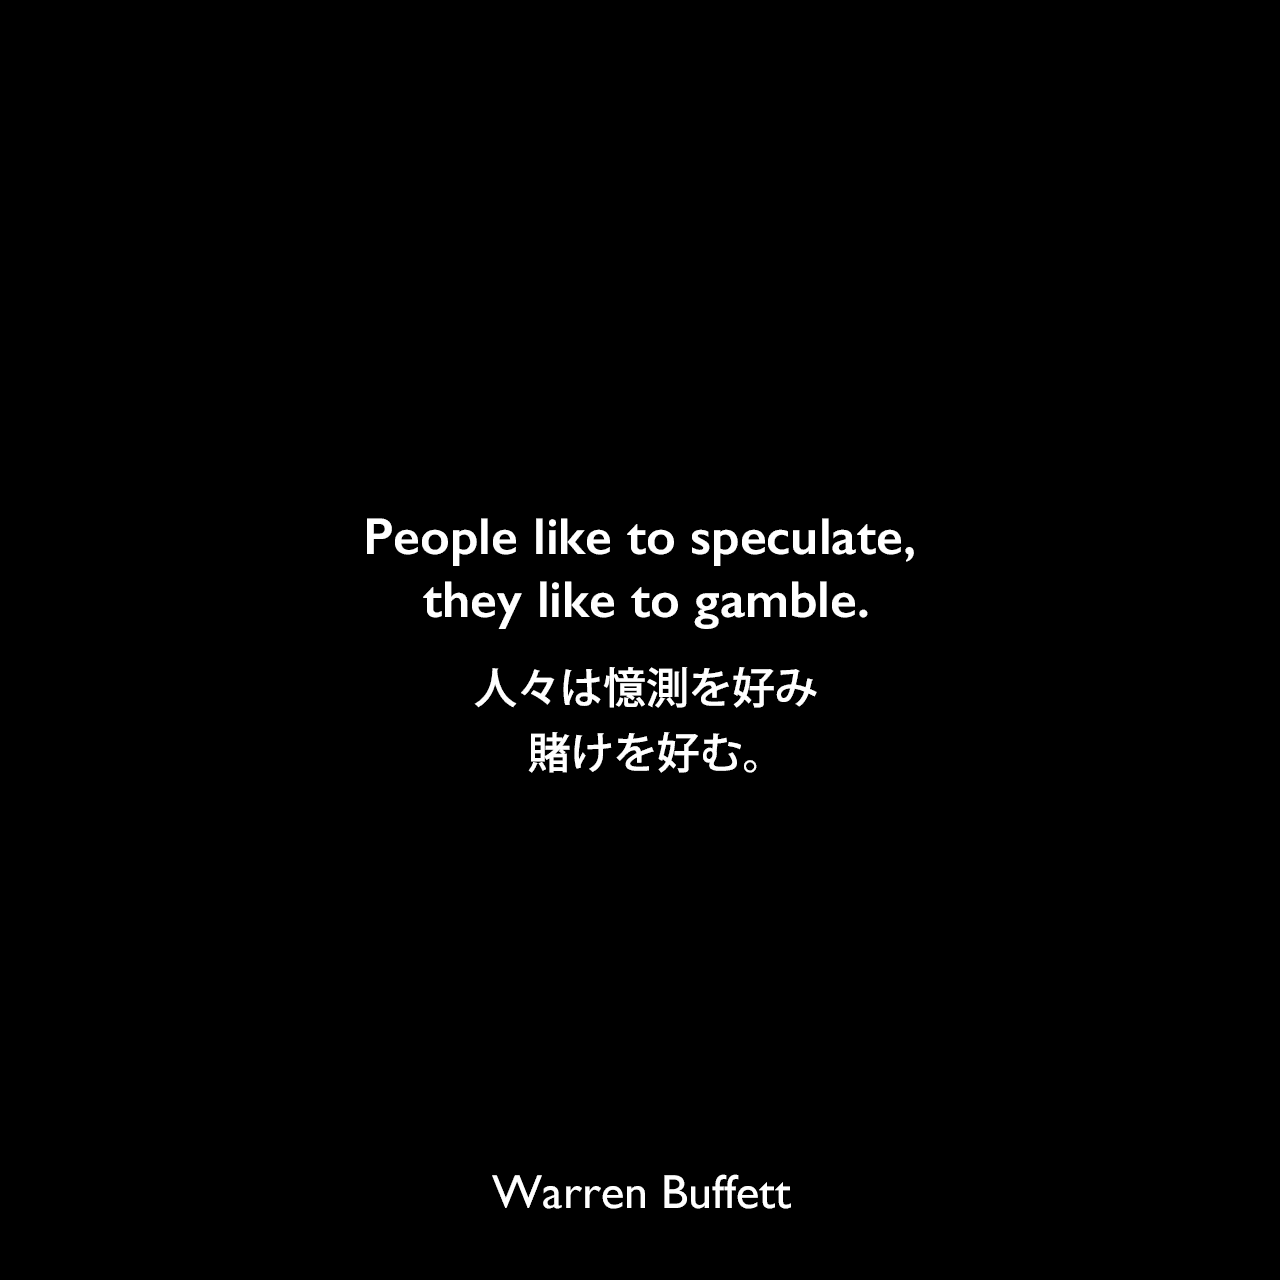 People like to speculate, they like to gamble.人々は憶測を好み、賭けを好む。Warren Buffett